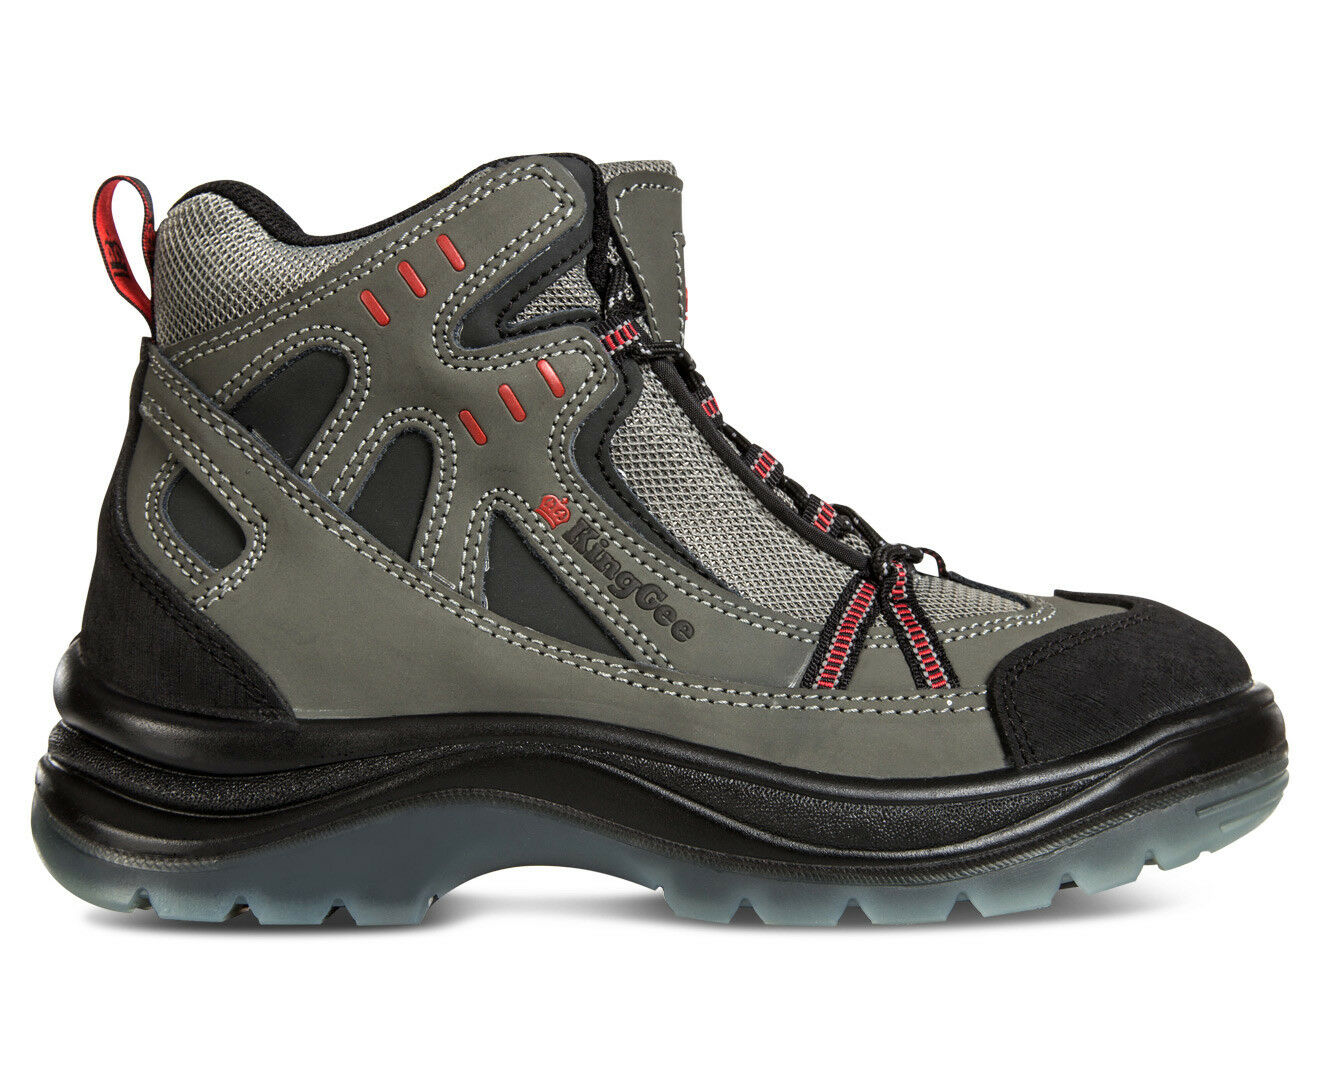 KINGGEE BOOT Uomo NULLARBOR HIKER SAFETY BOOT KINGGEE - GREY -UK Uomo 10 cd1165